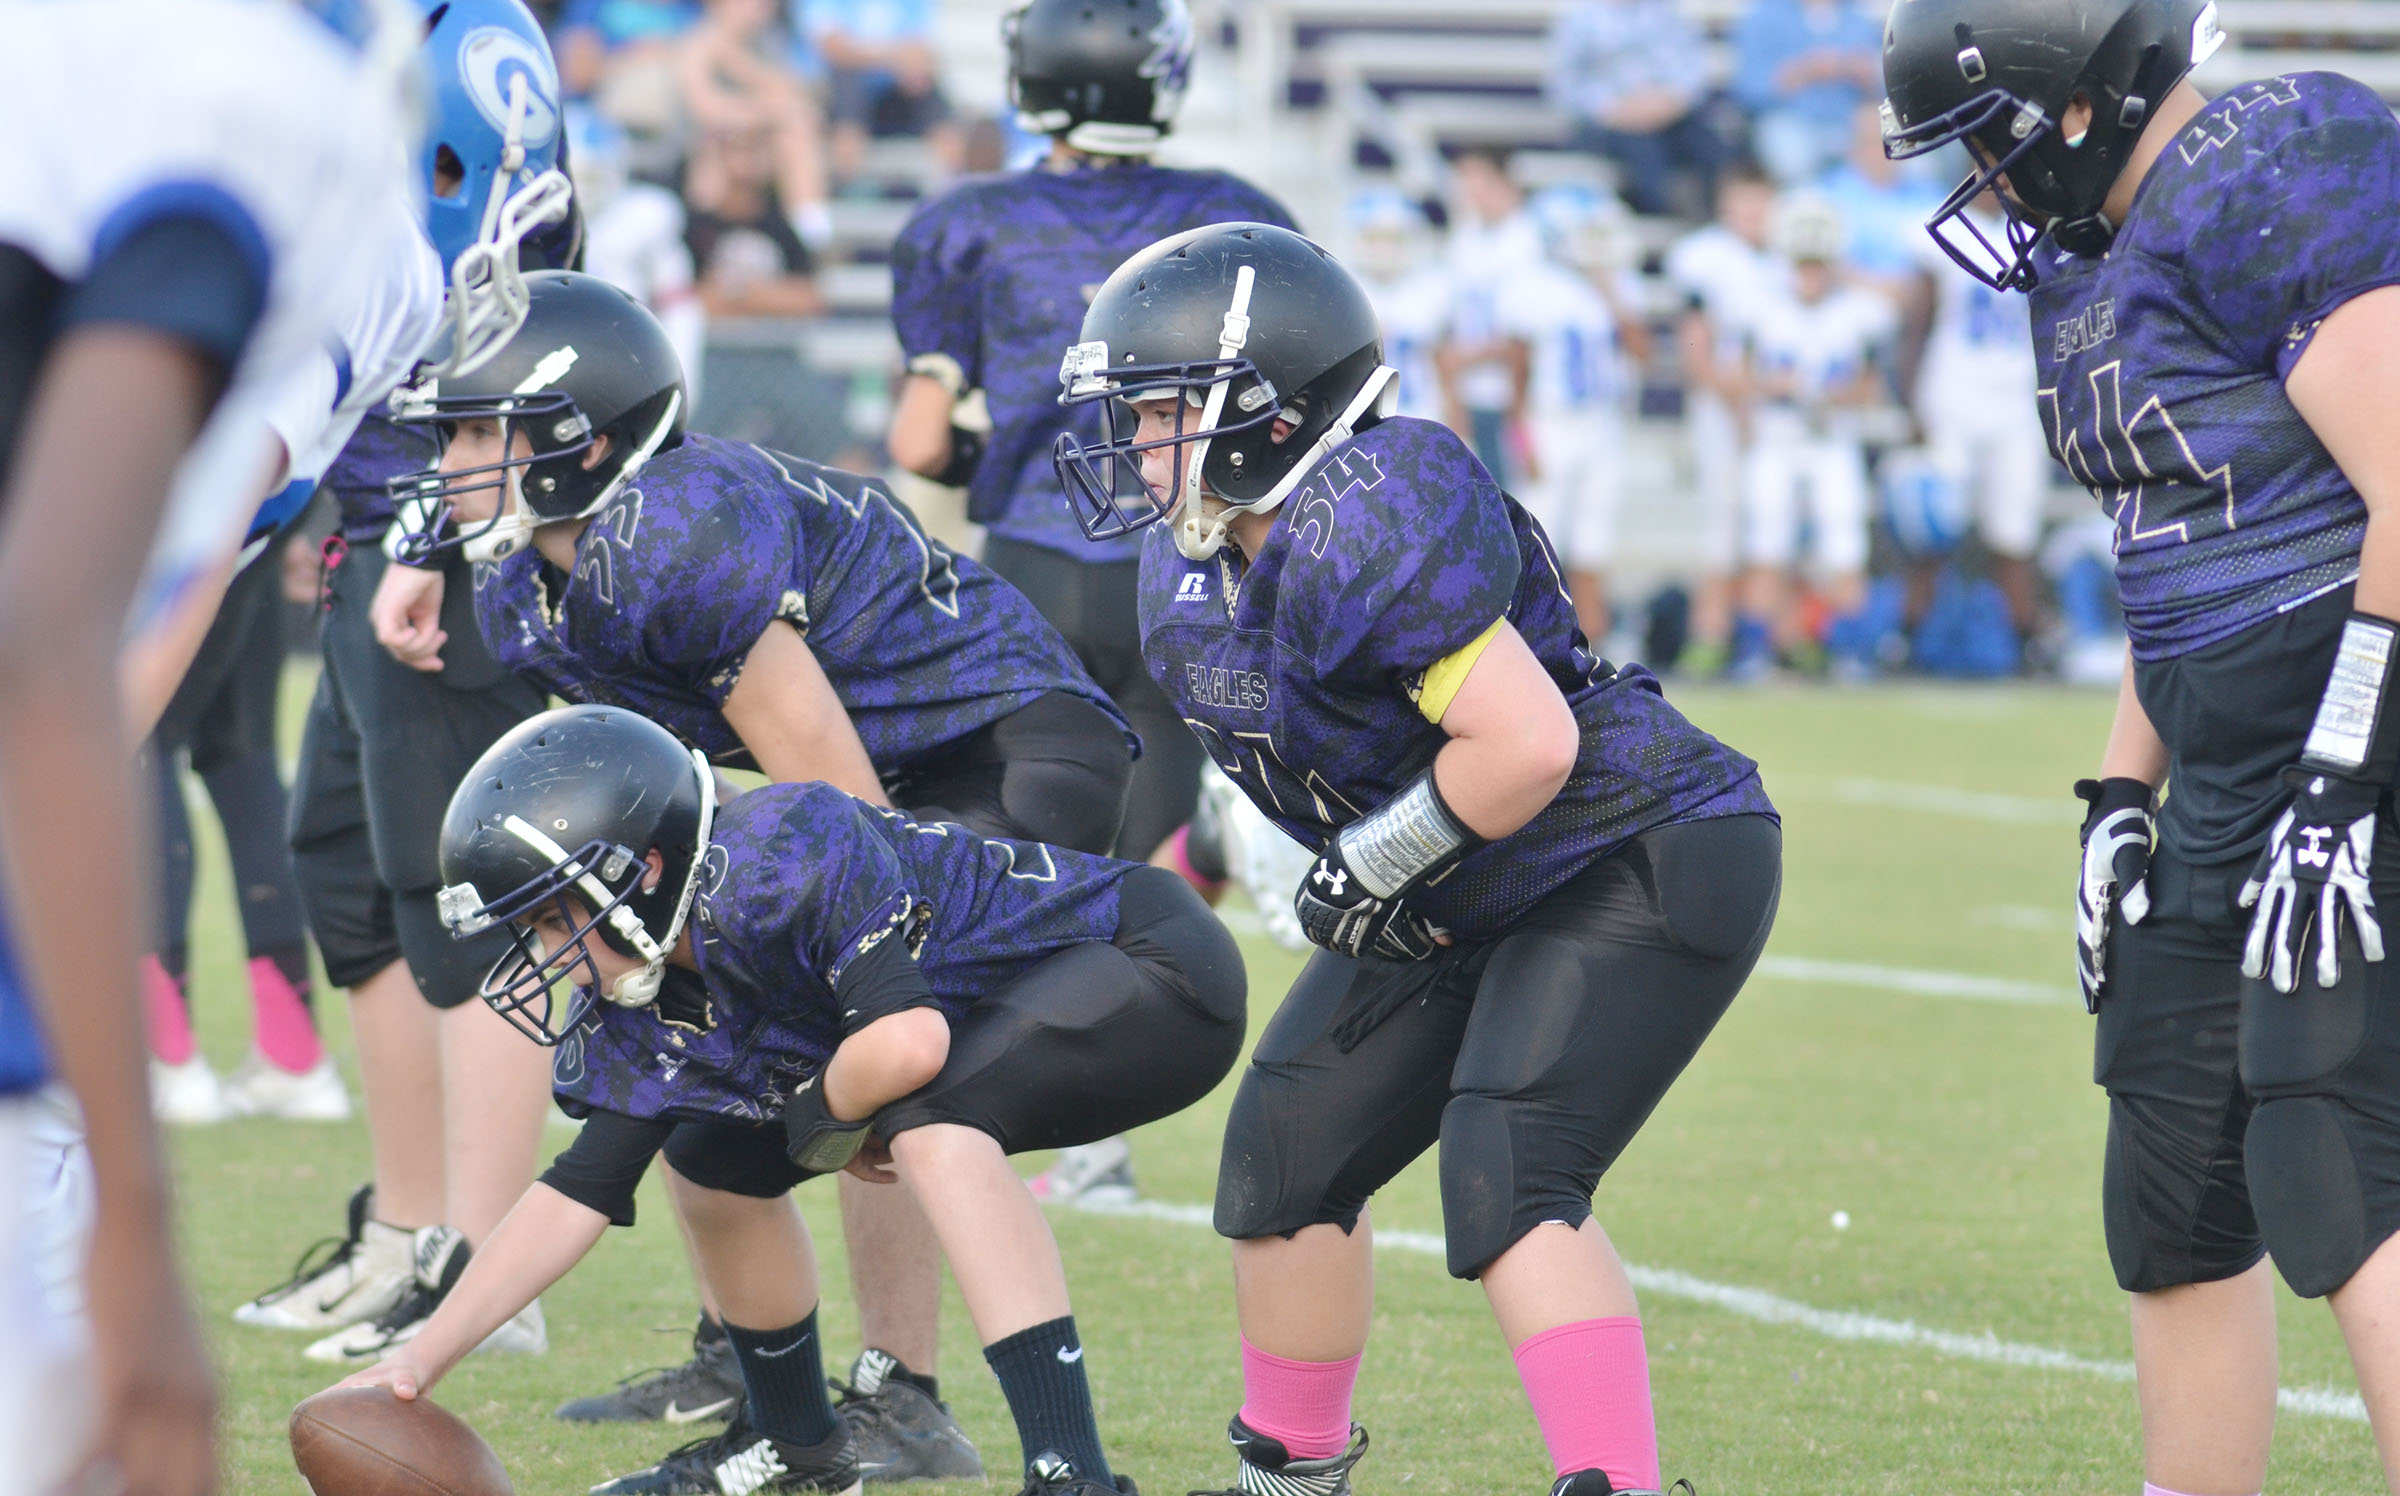 CMS offensive line gets ready for the snap.